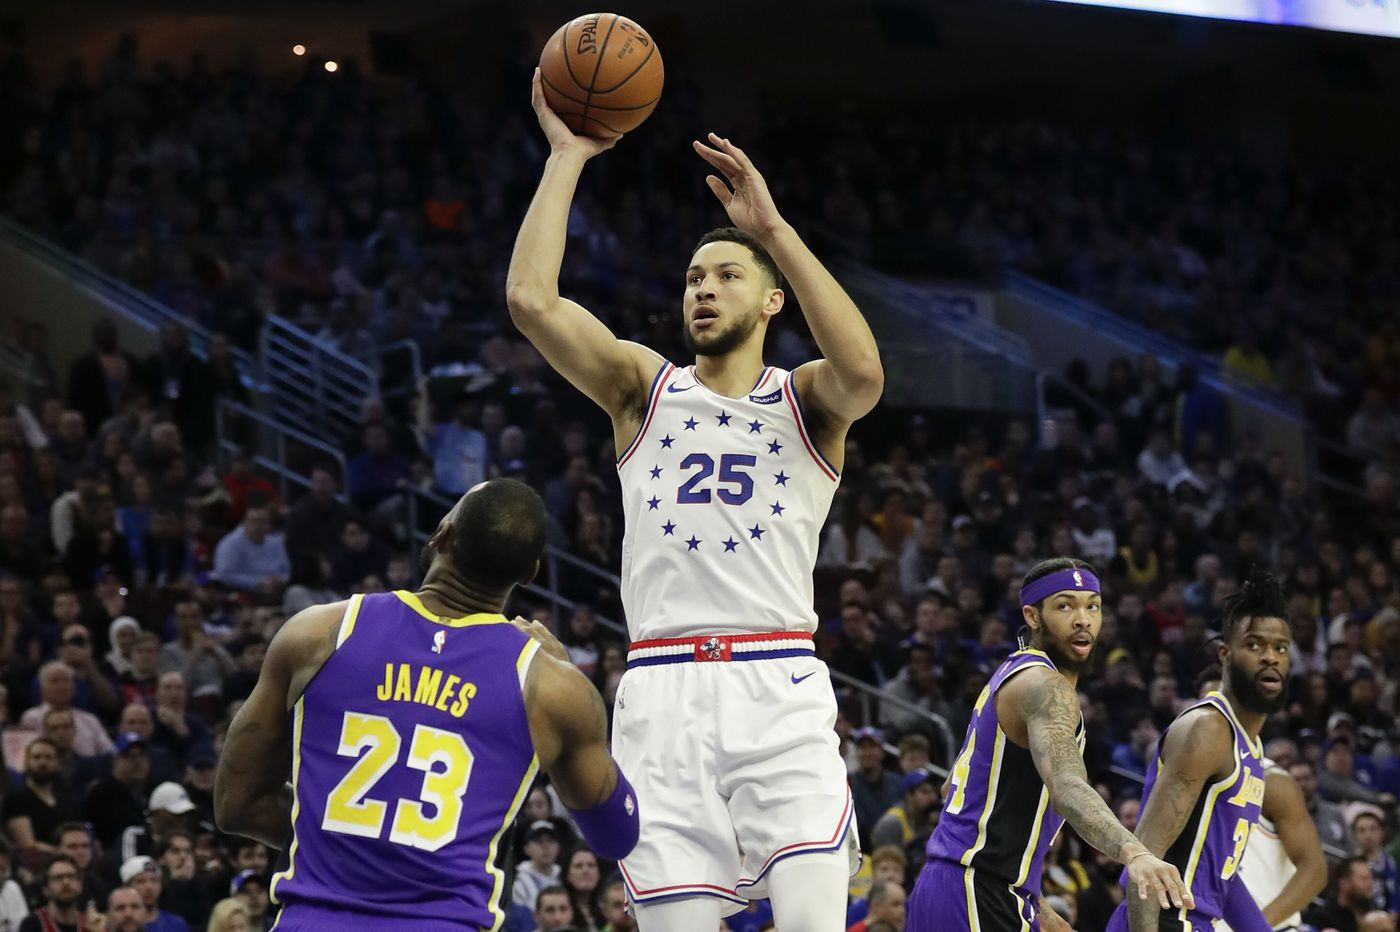 Contact between Ben Simmons and Lakers doesn't violate tampering policy, NBA rules